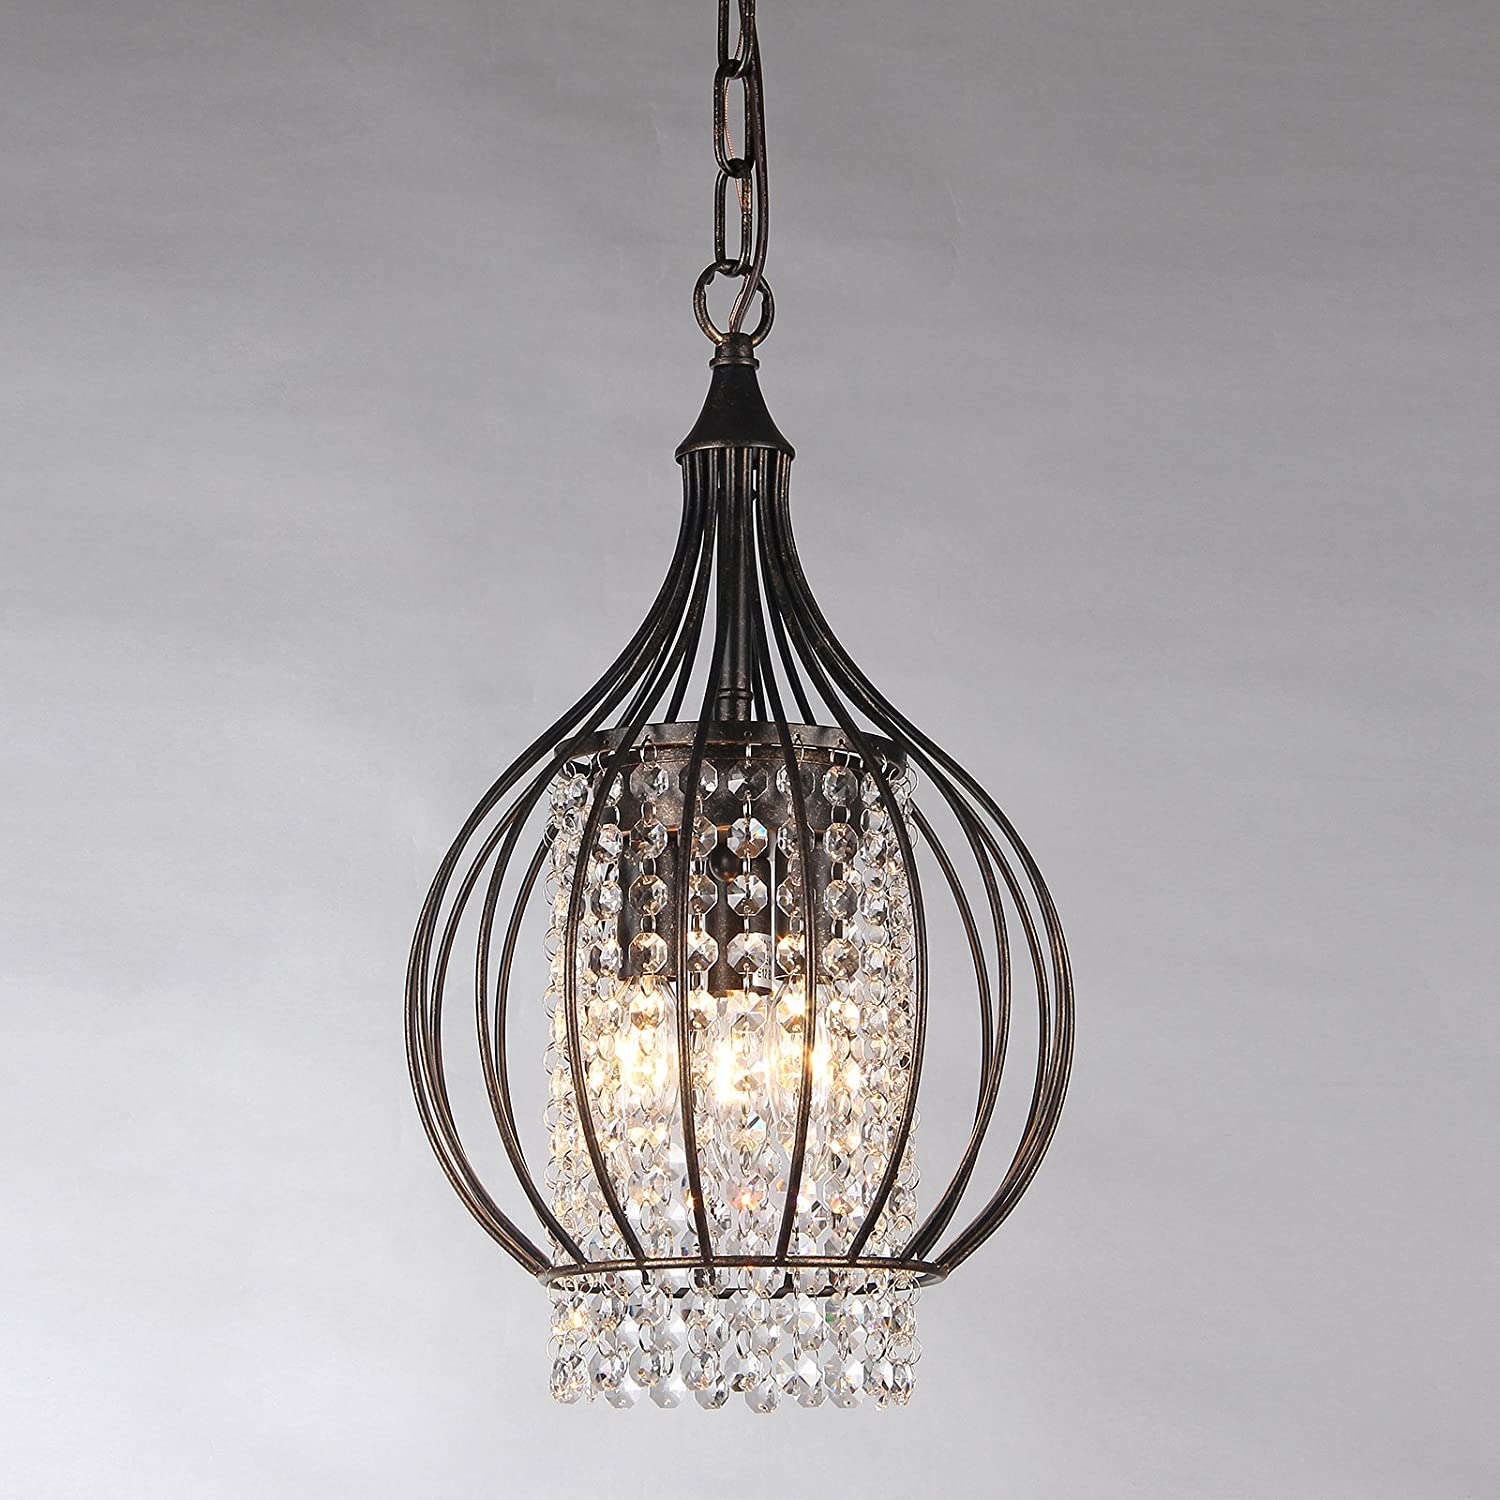 lamp light lighting ip chandelier center com ceiling products bcp best glass pendant walmart crystal choice